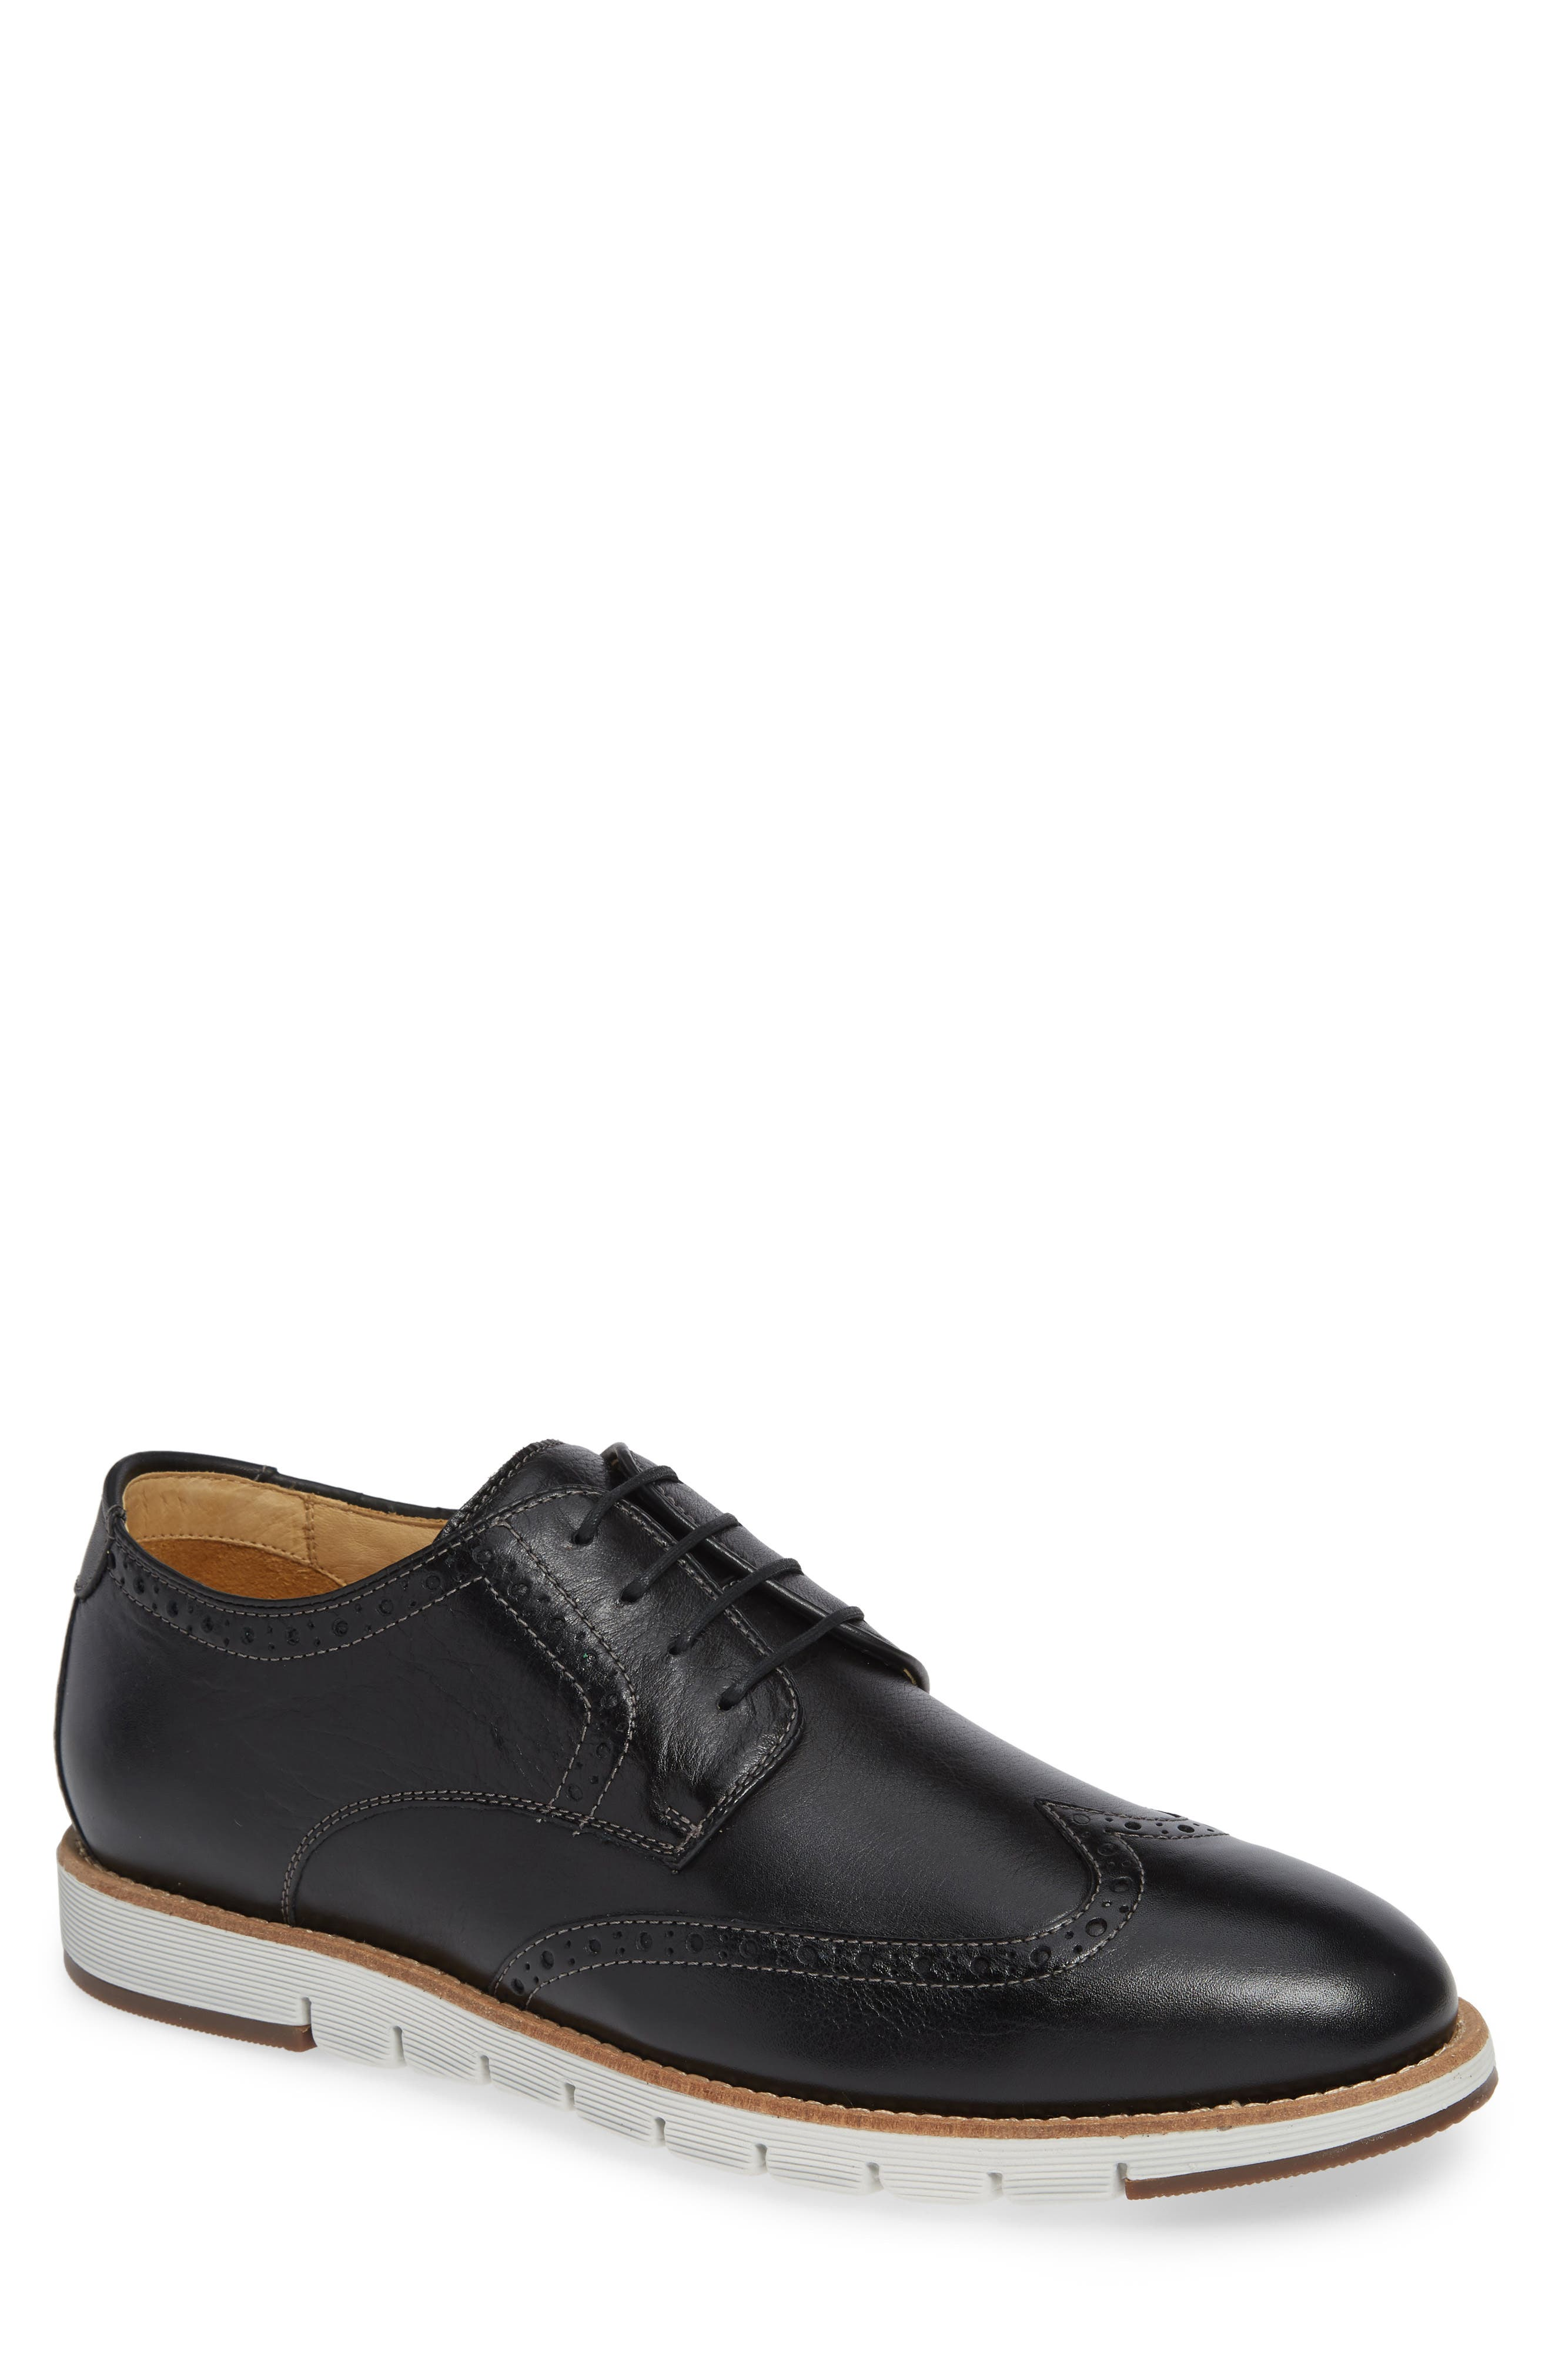 Martell Wingtip,                             Main thumbnail 1, color,                             BLACK LEATHER